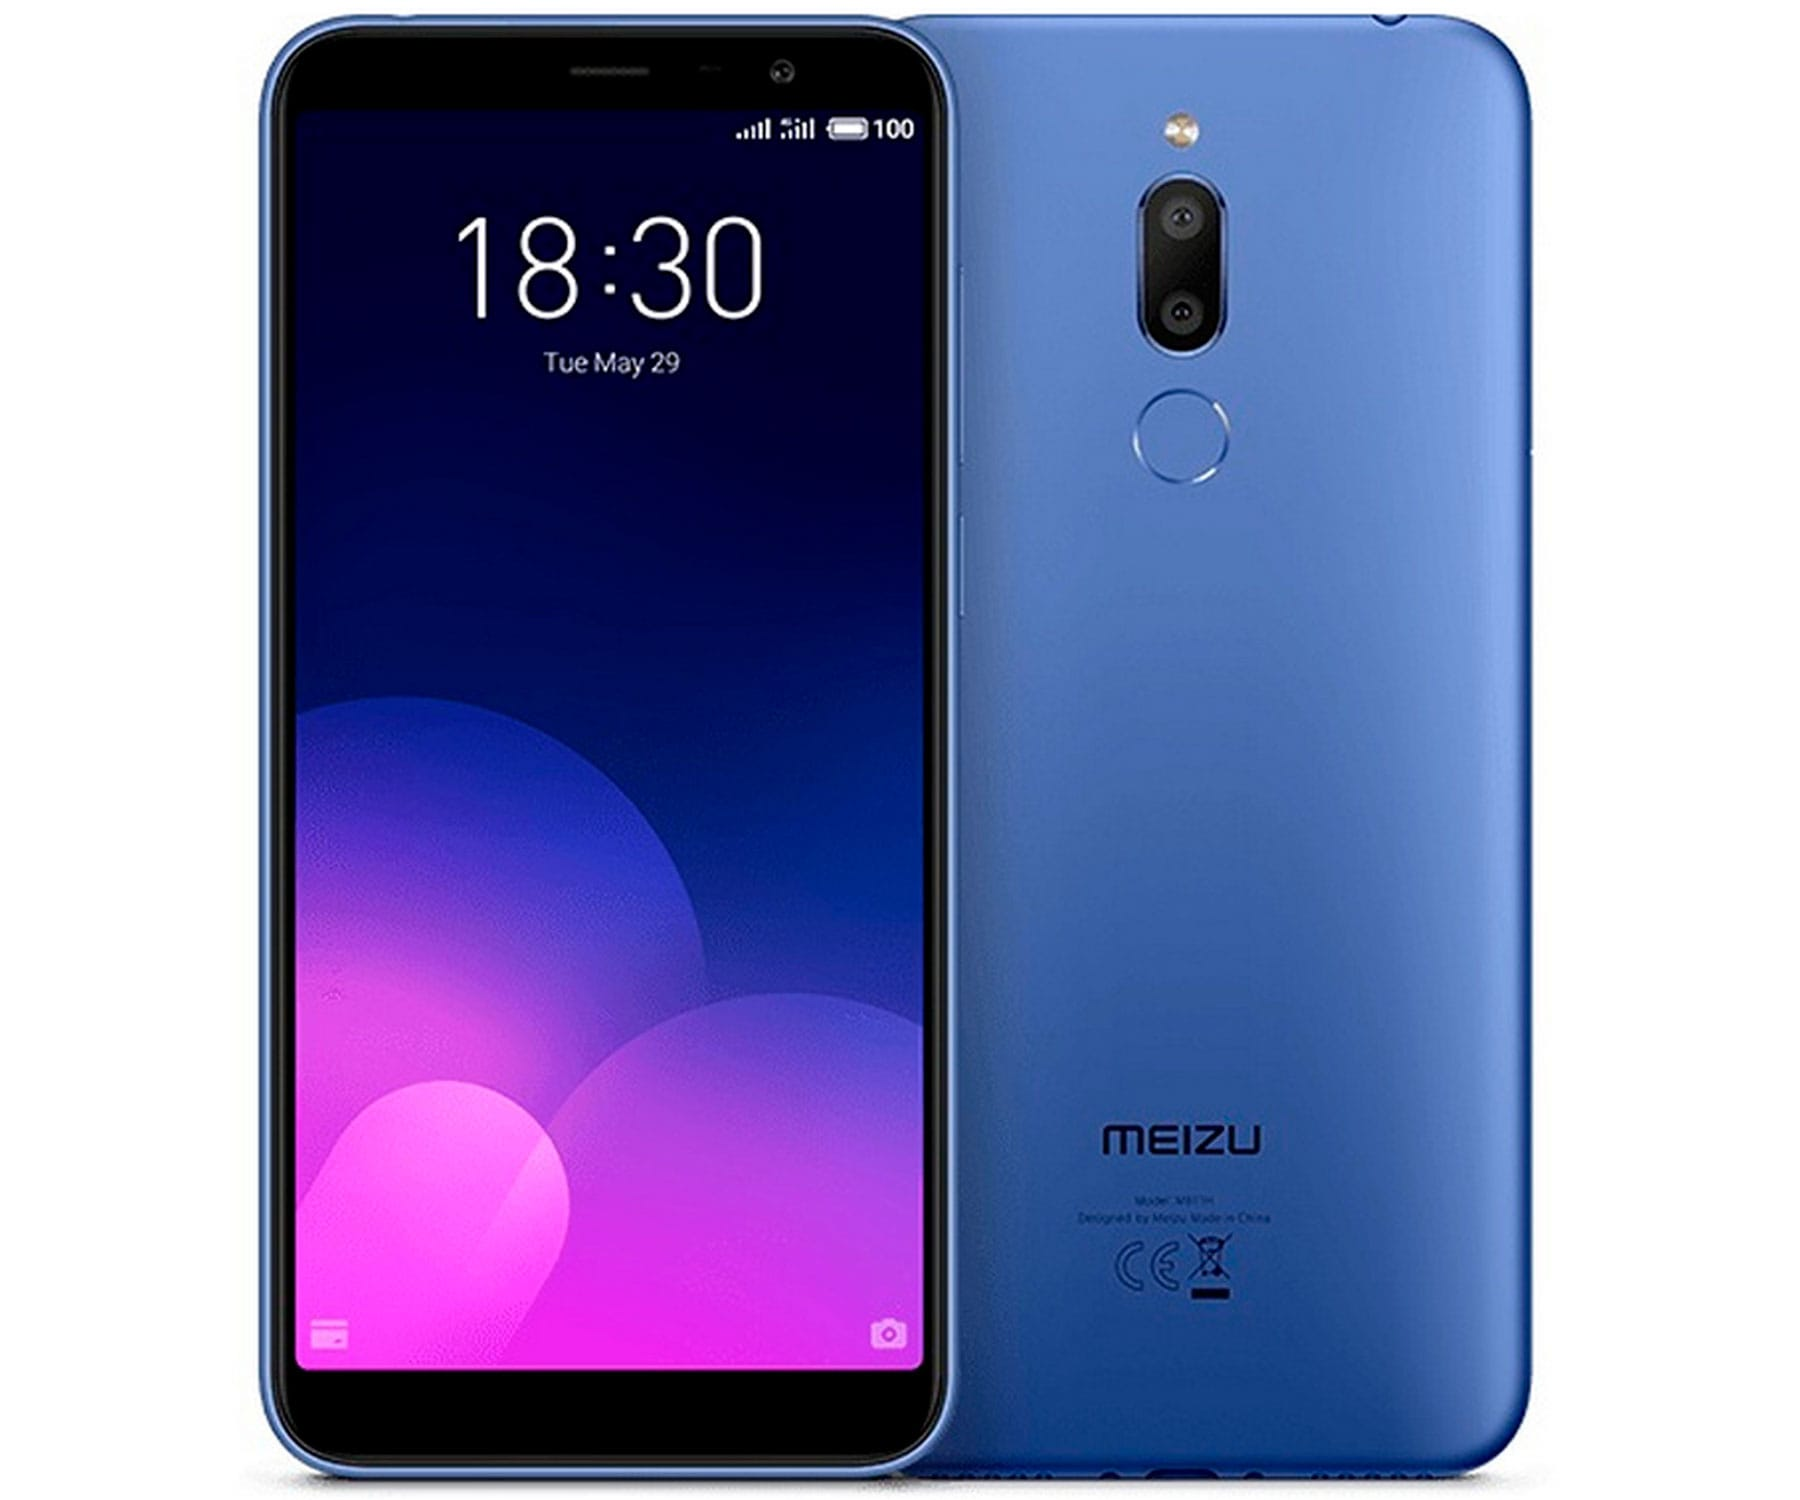 MEIZU M6T AZUL MÓVIL 4G DUAL SIM 5.7'' IPS HD+ OCTACORE 16GB 2GB RAM DUALCAM 13MP SELFIES 8MP